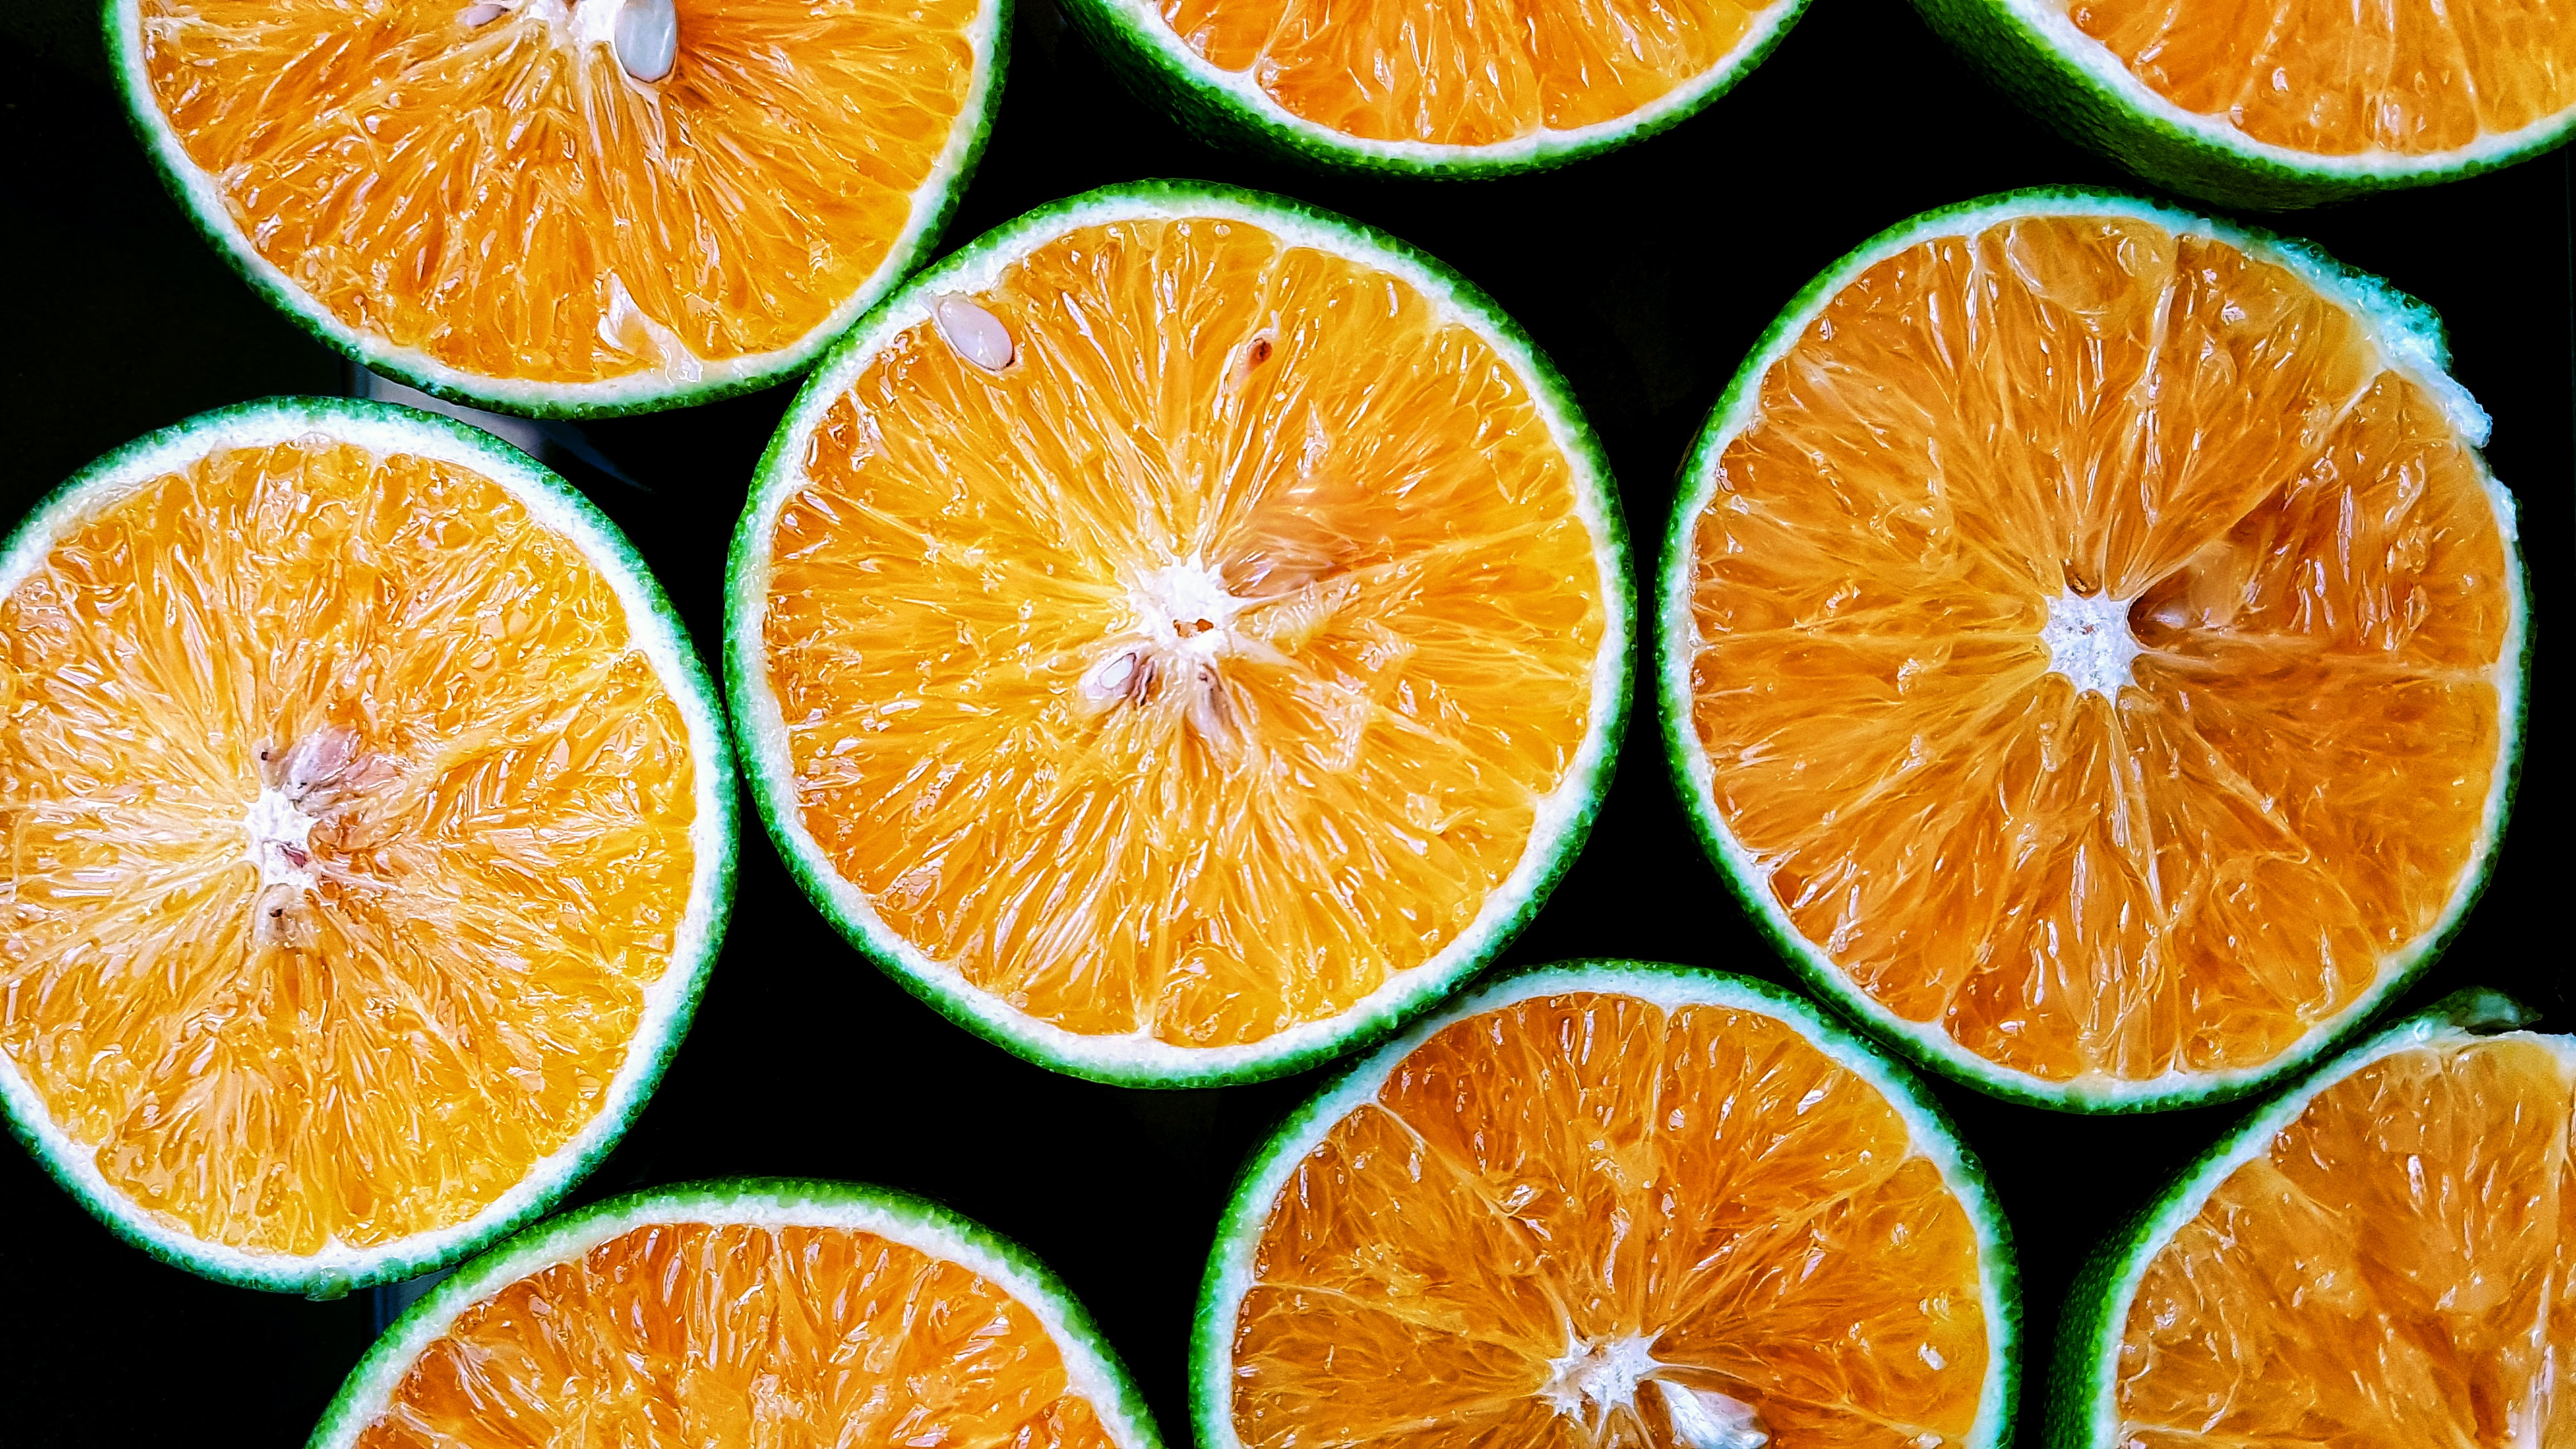 orange fruit slices